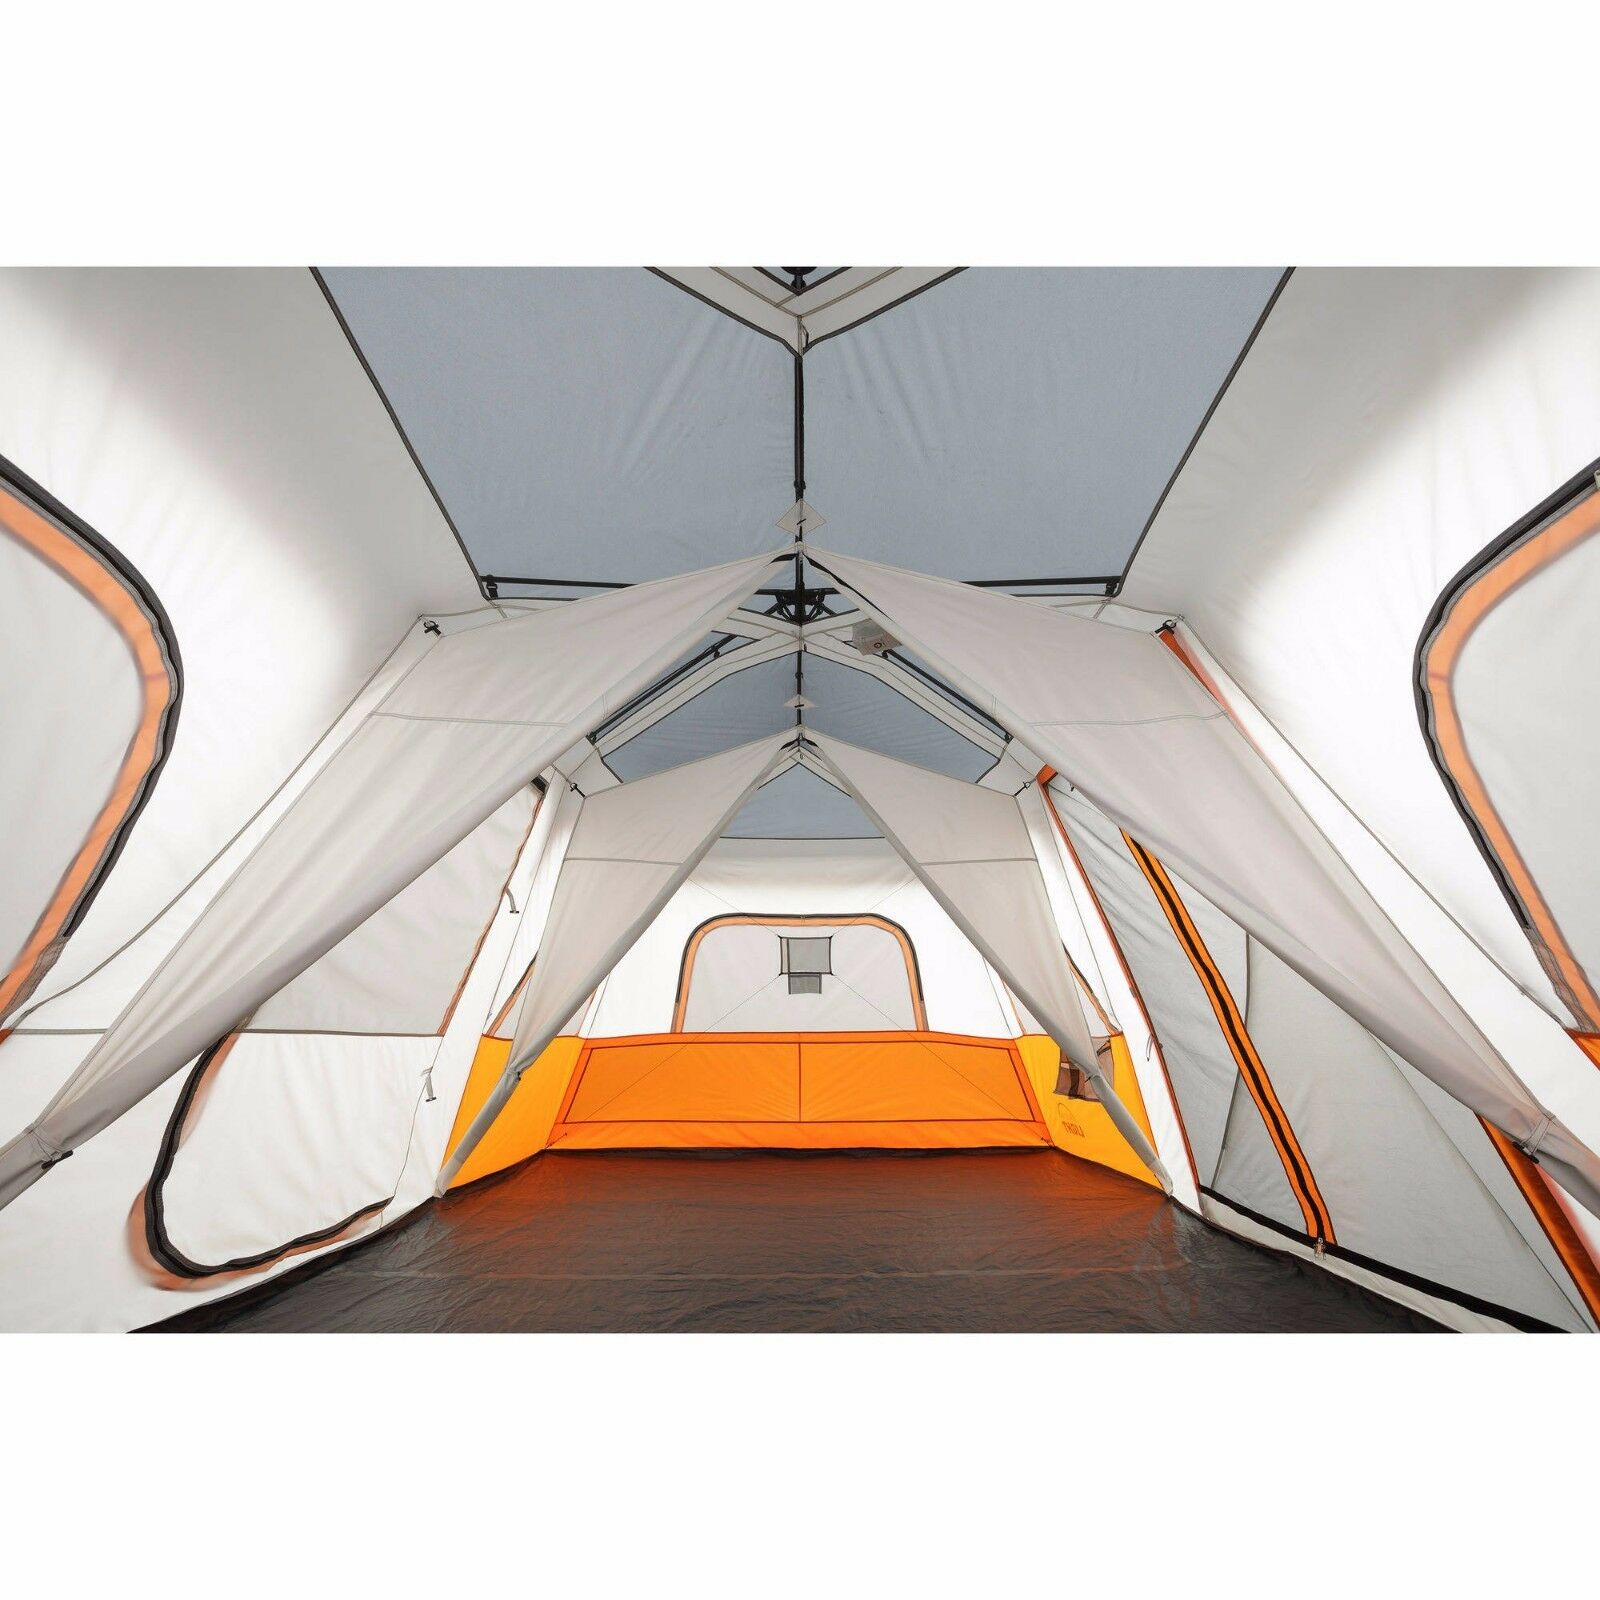 Cabin Tent Ozark Trail 12 Person Camping Family Outdoor